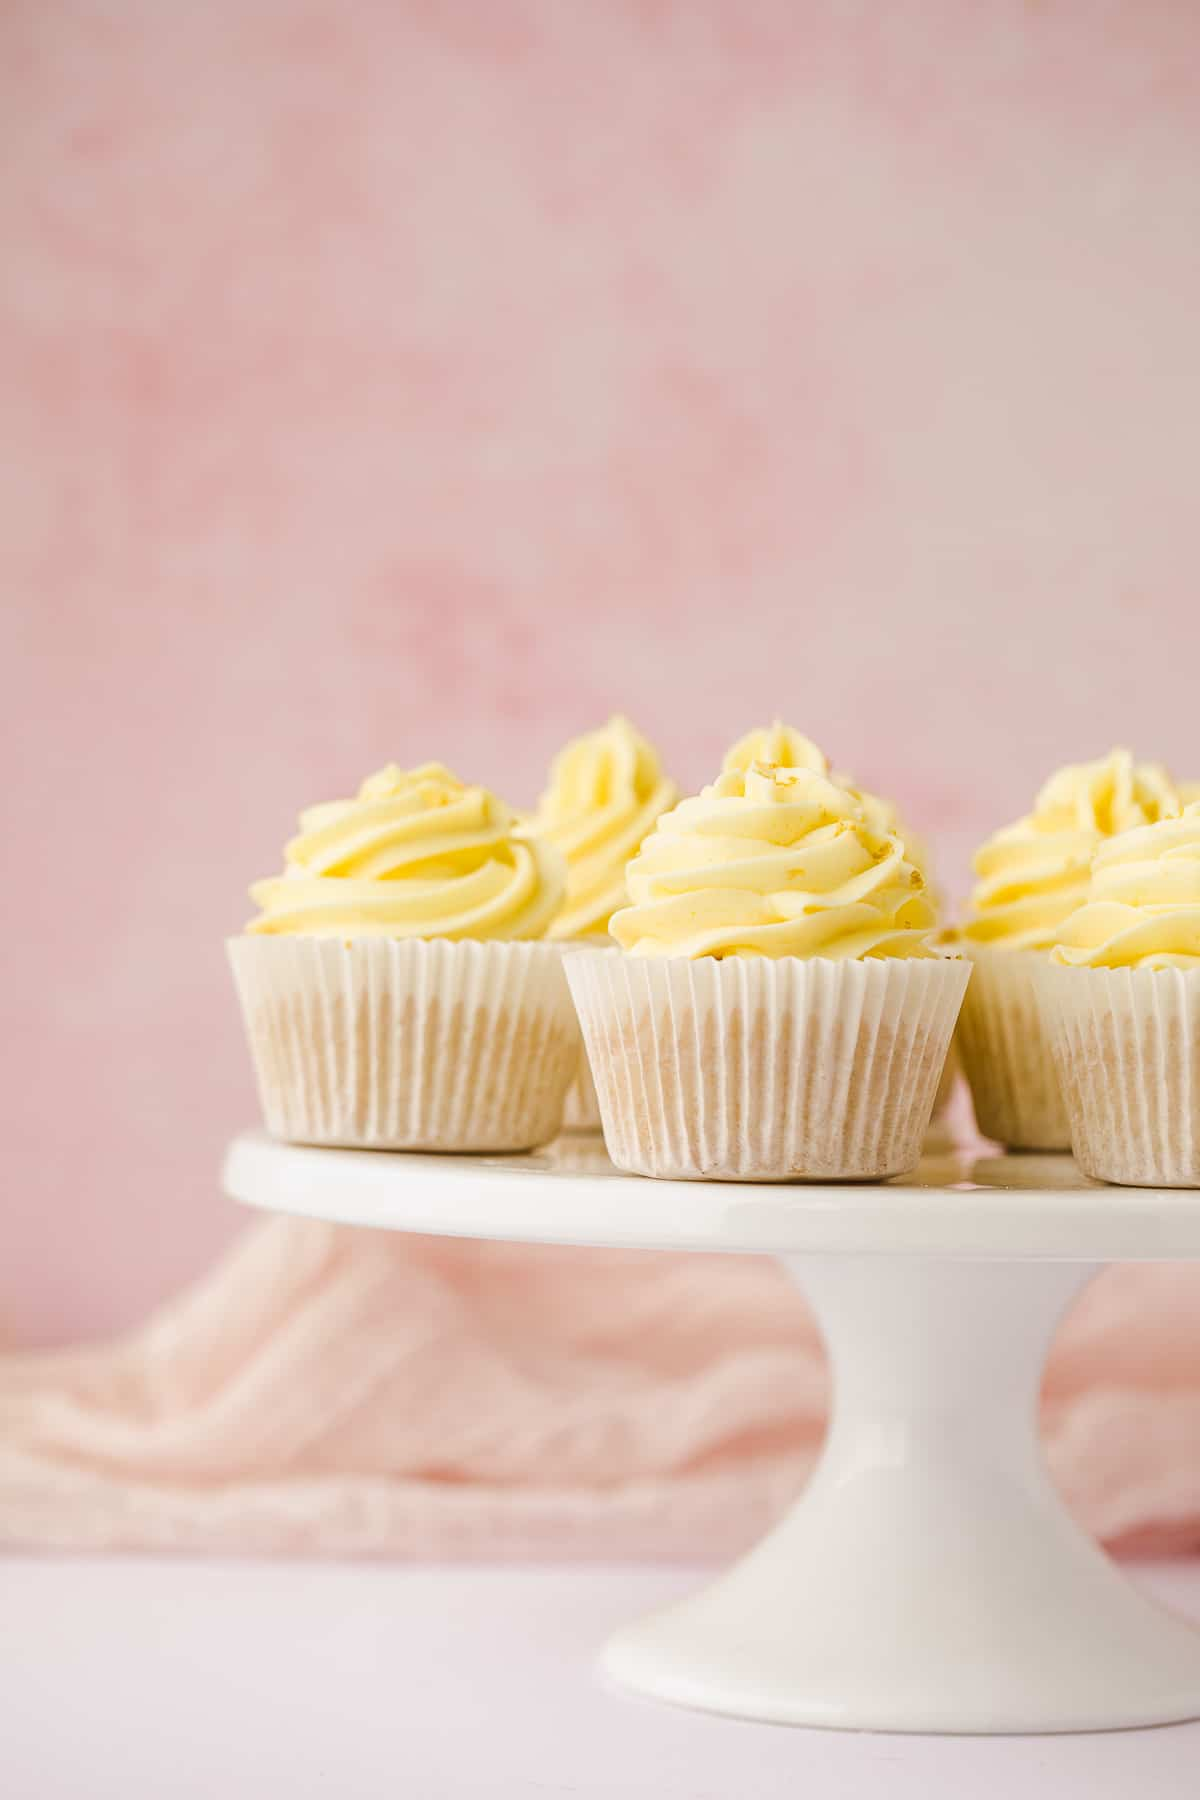 Lemon drizzle cupcakes topped with a lemon flavoured buttercream.